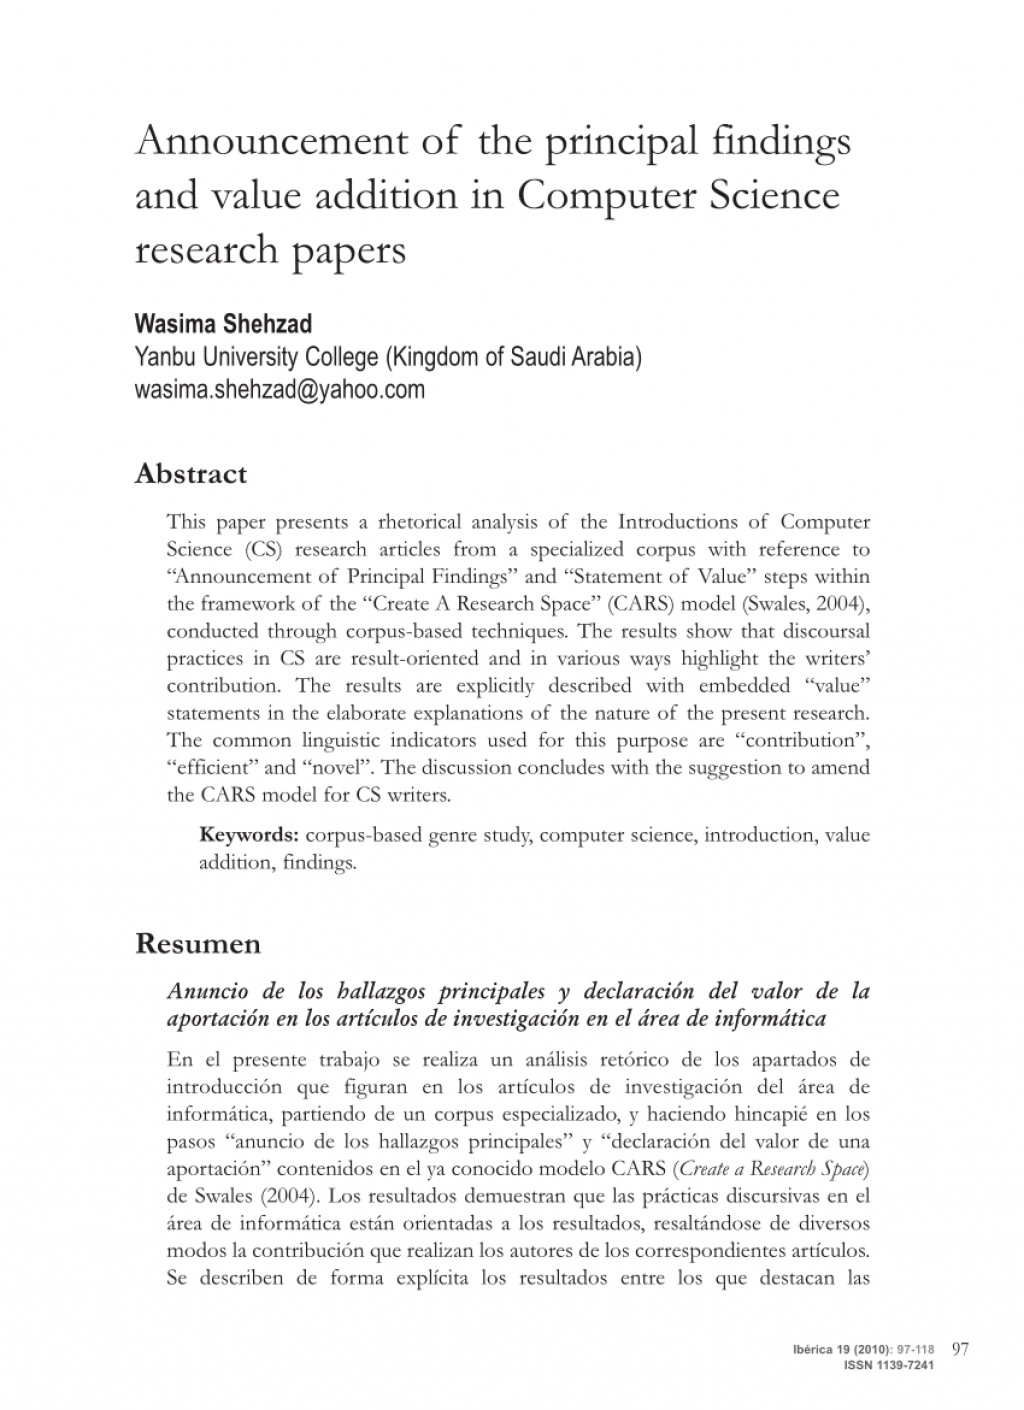 004 Largepreview Computer Science Researchs Sites Unusual Research Papers Large